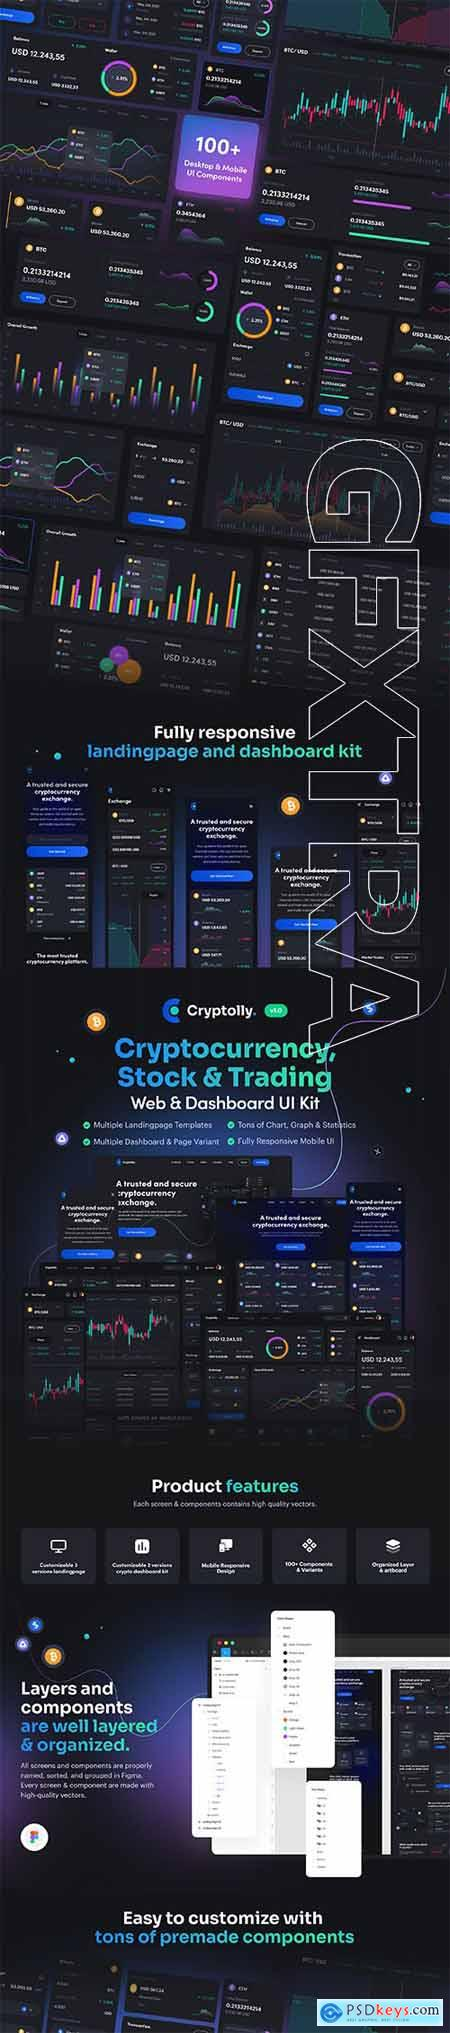 Cryptolly - Cryptocurrency Web & Dashboard UI Kit